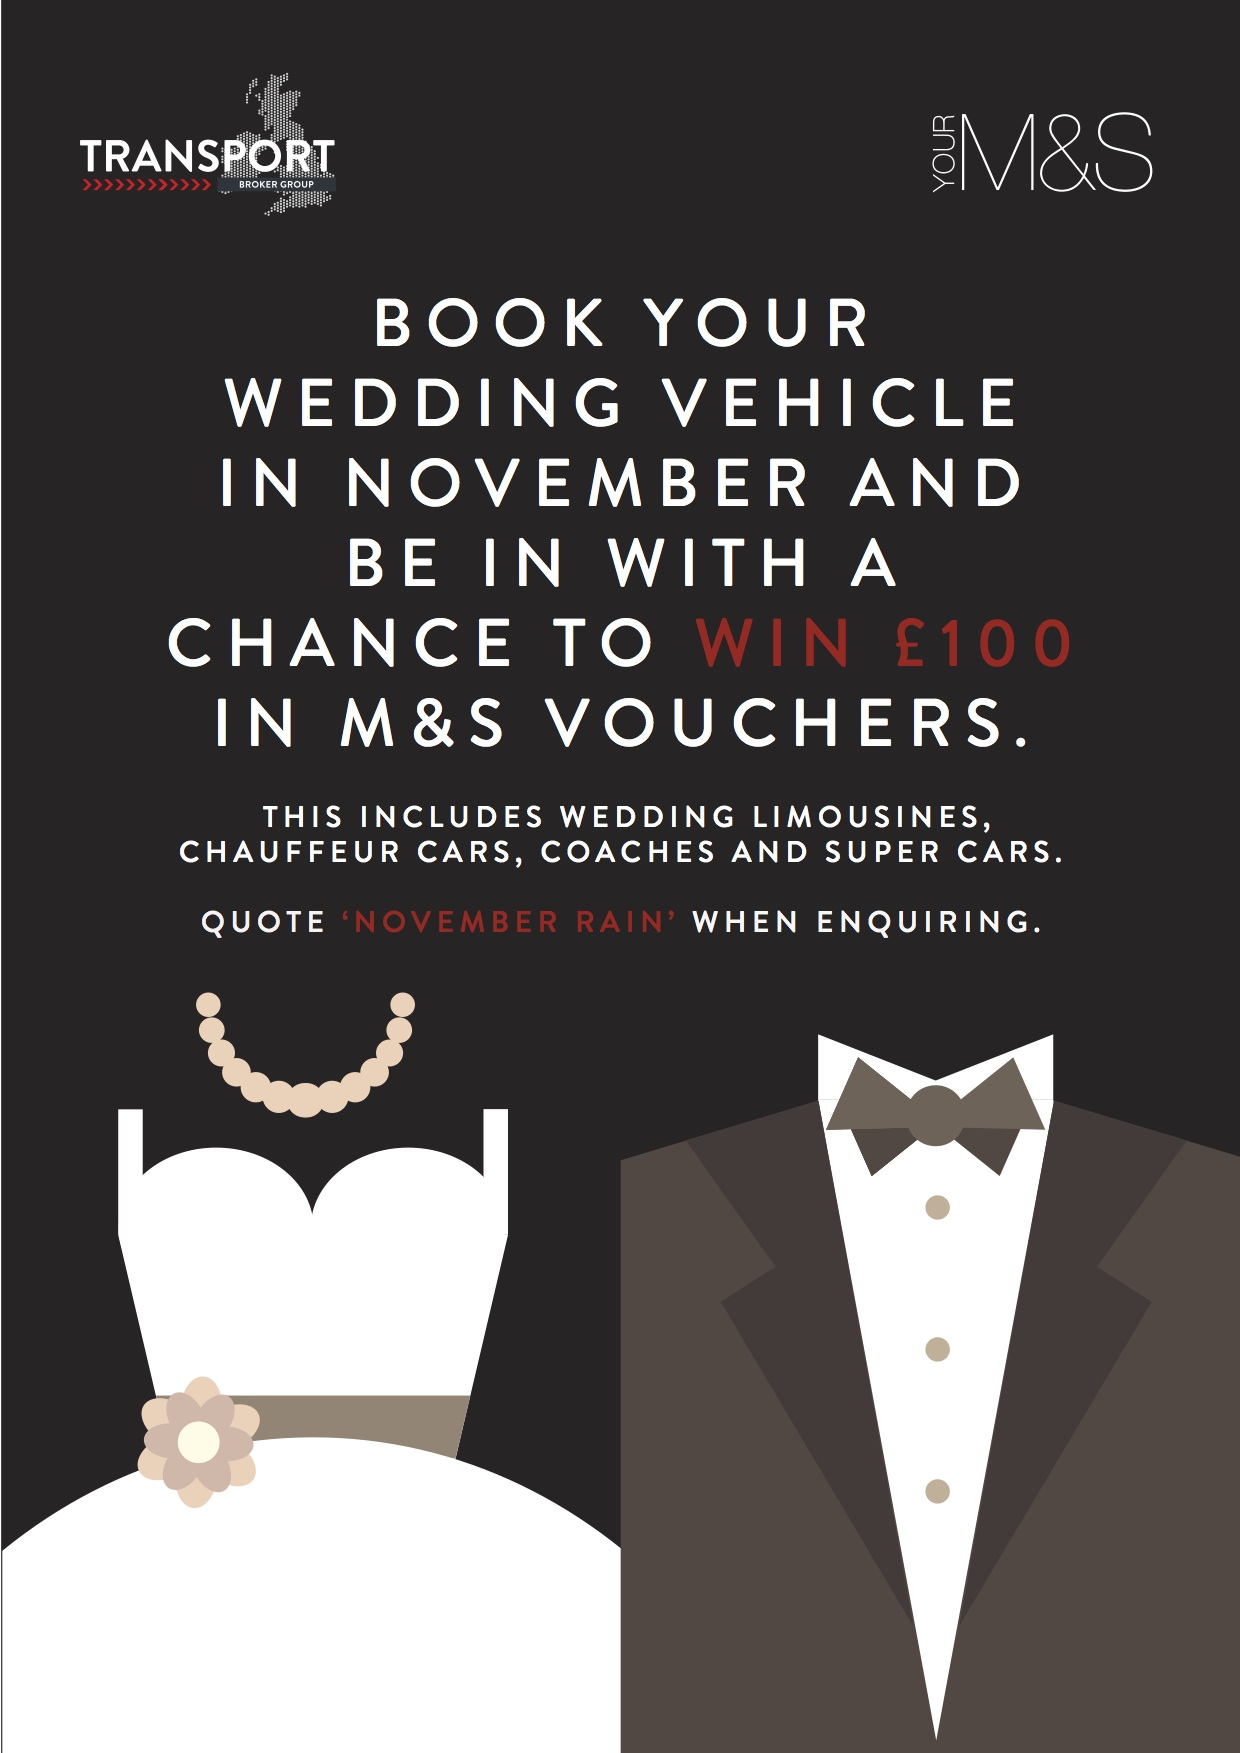 November Wedding Deal: Book Your Wedding Car This Month and You Could Win £100 Marks & Spencer Vouchers